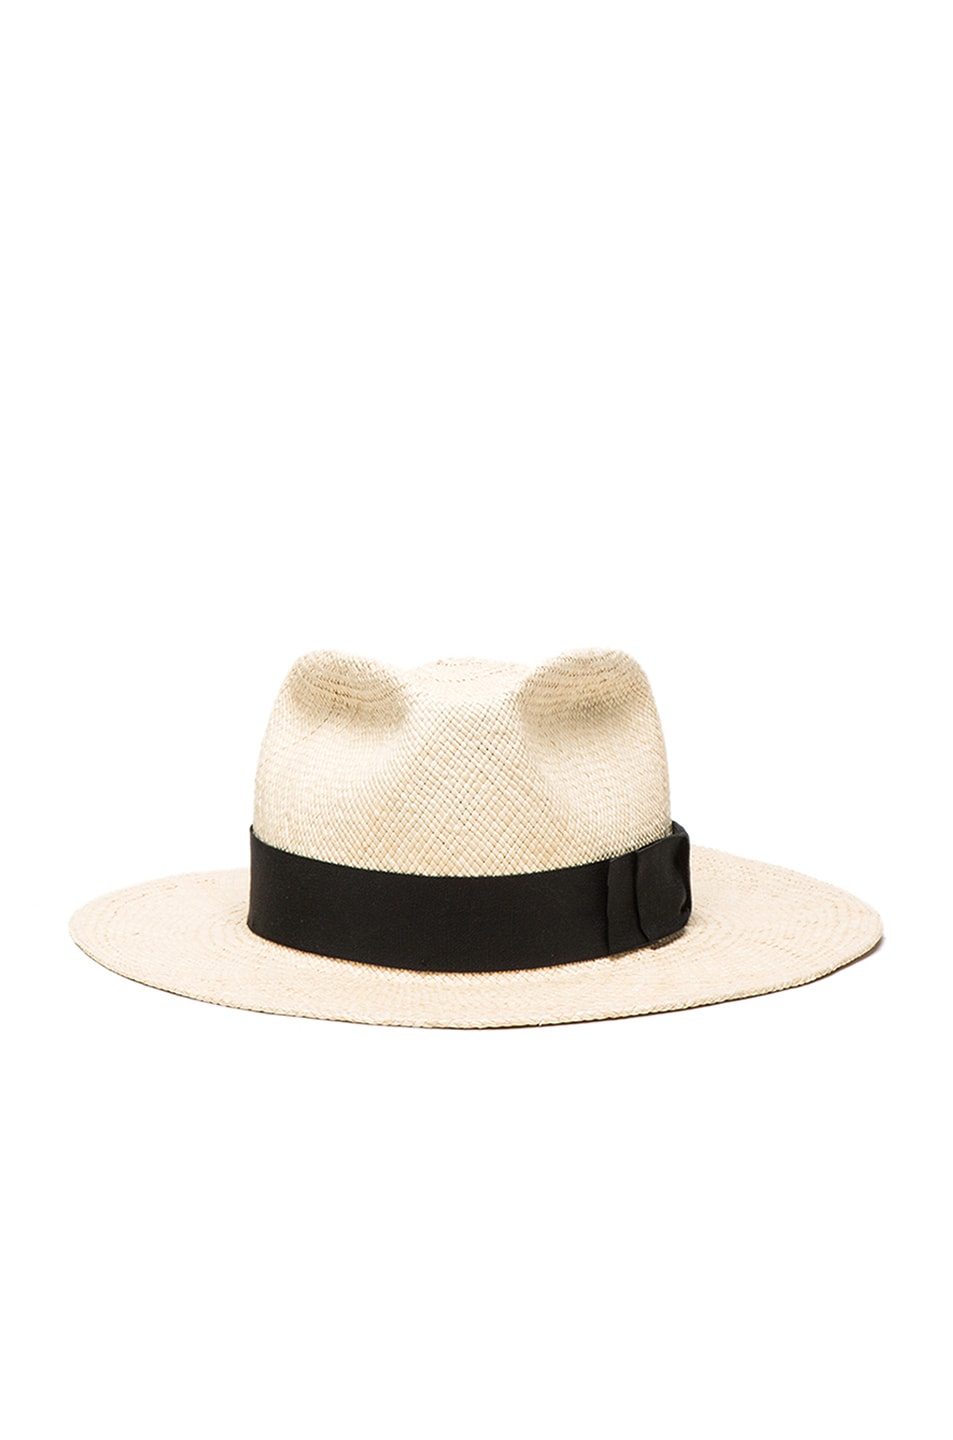 Image 1 of Gladys Tamez Millinery The Kennedy Hat in Natural